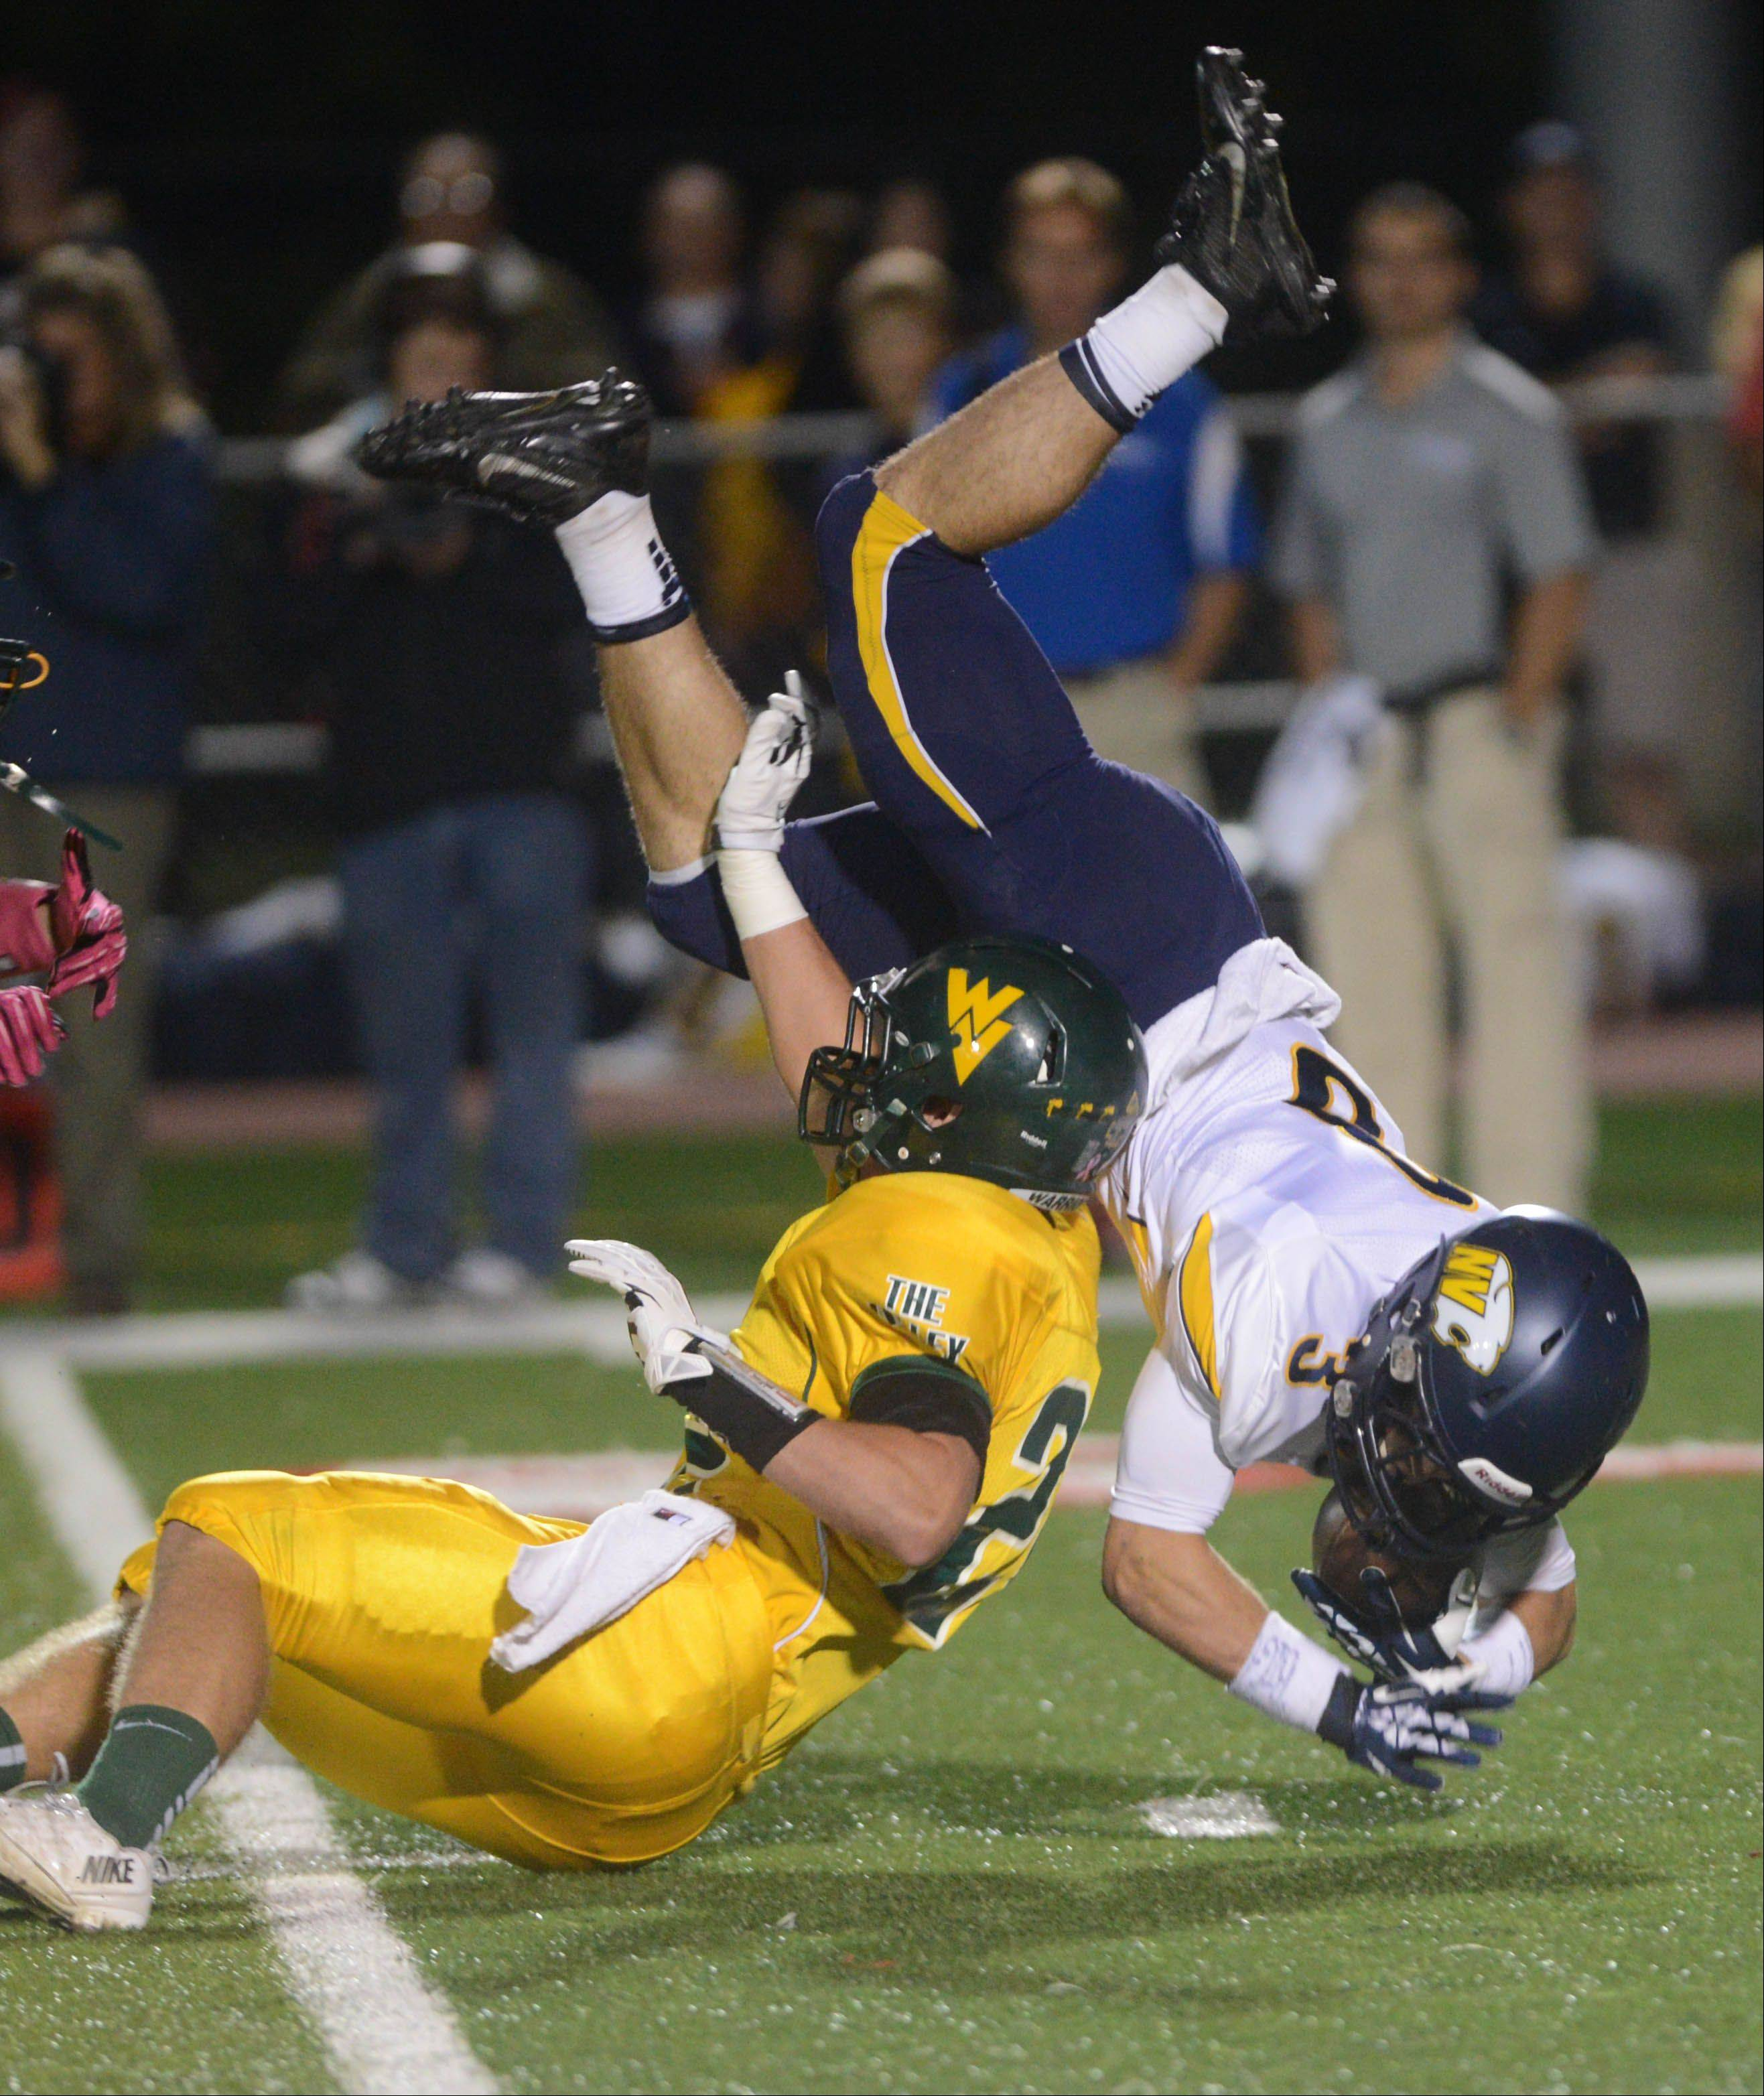 Mikey Dudek of Neuqua Valley goes airborne as Hugh Griffin of Waubonsie Valley makes a hit.